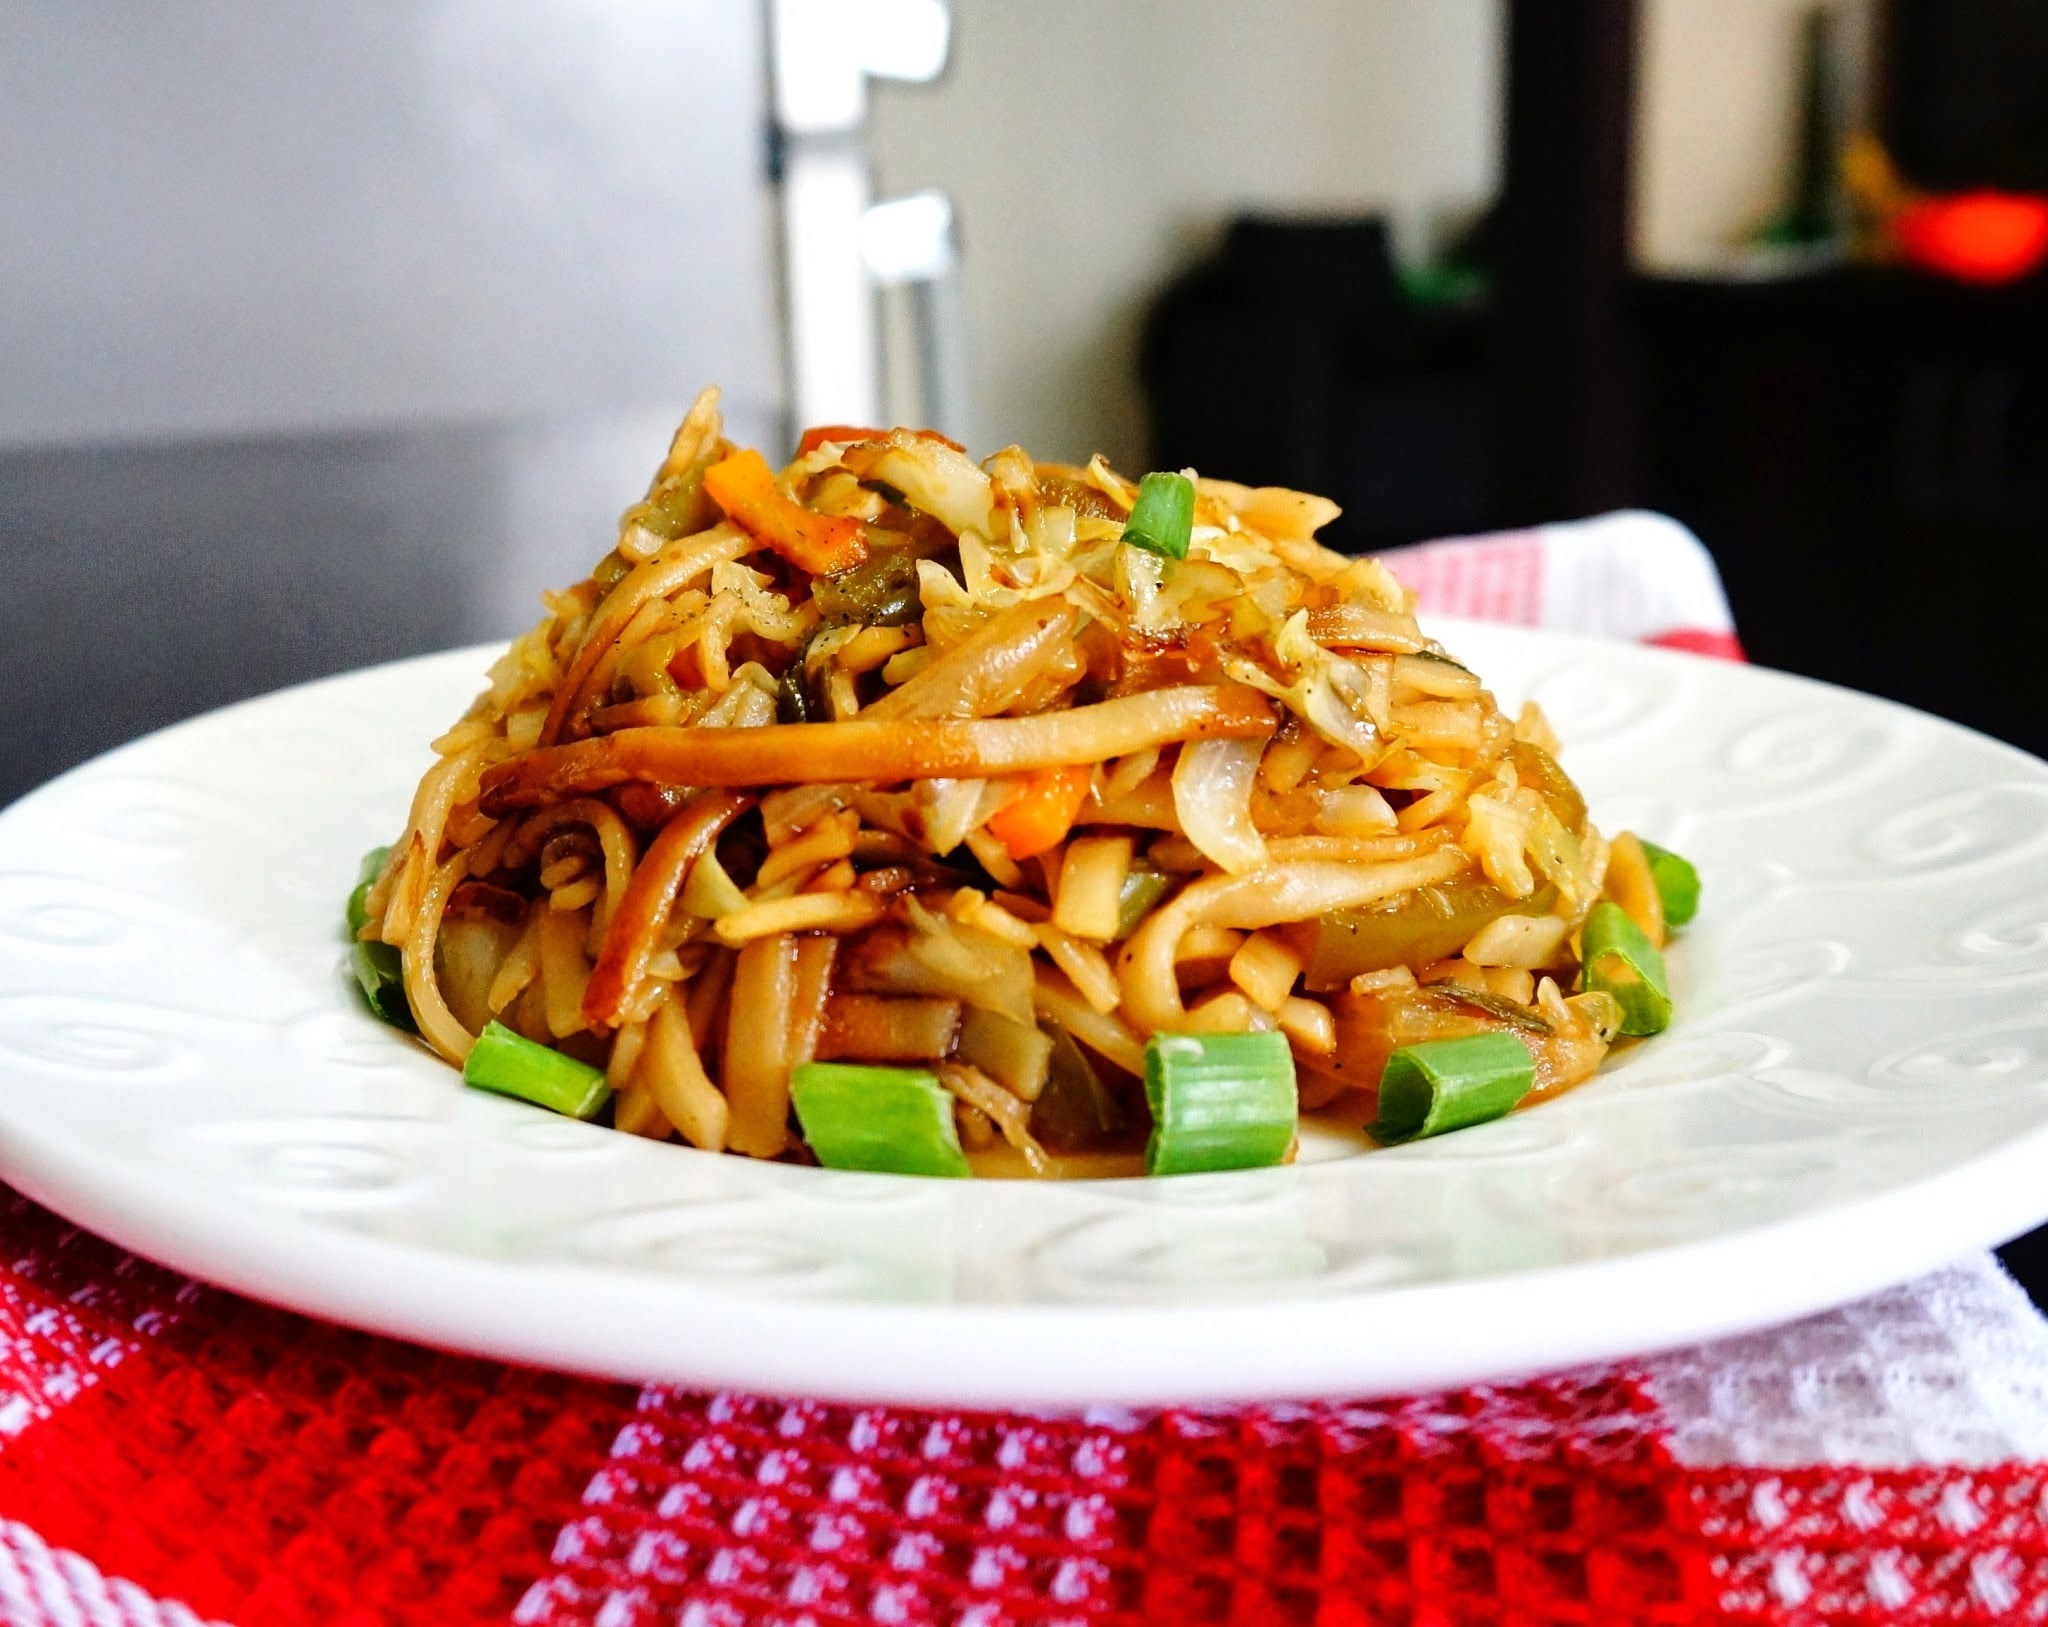 Recipe of Thai Rice vegetable noodles